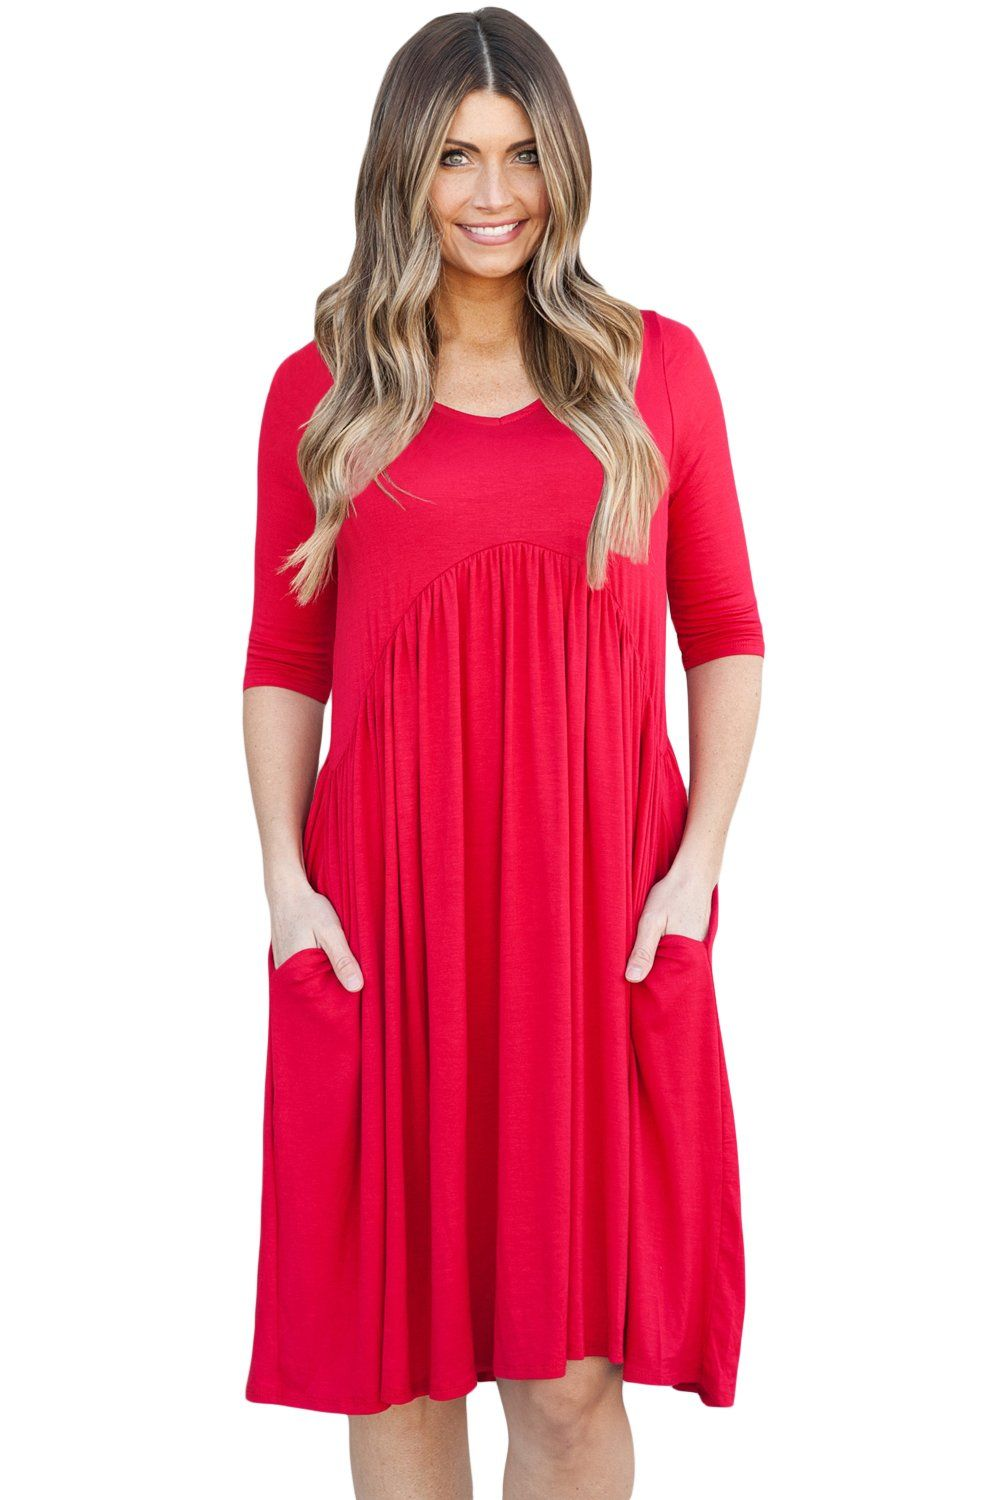 Sexy red sleeve draped swing dress products